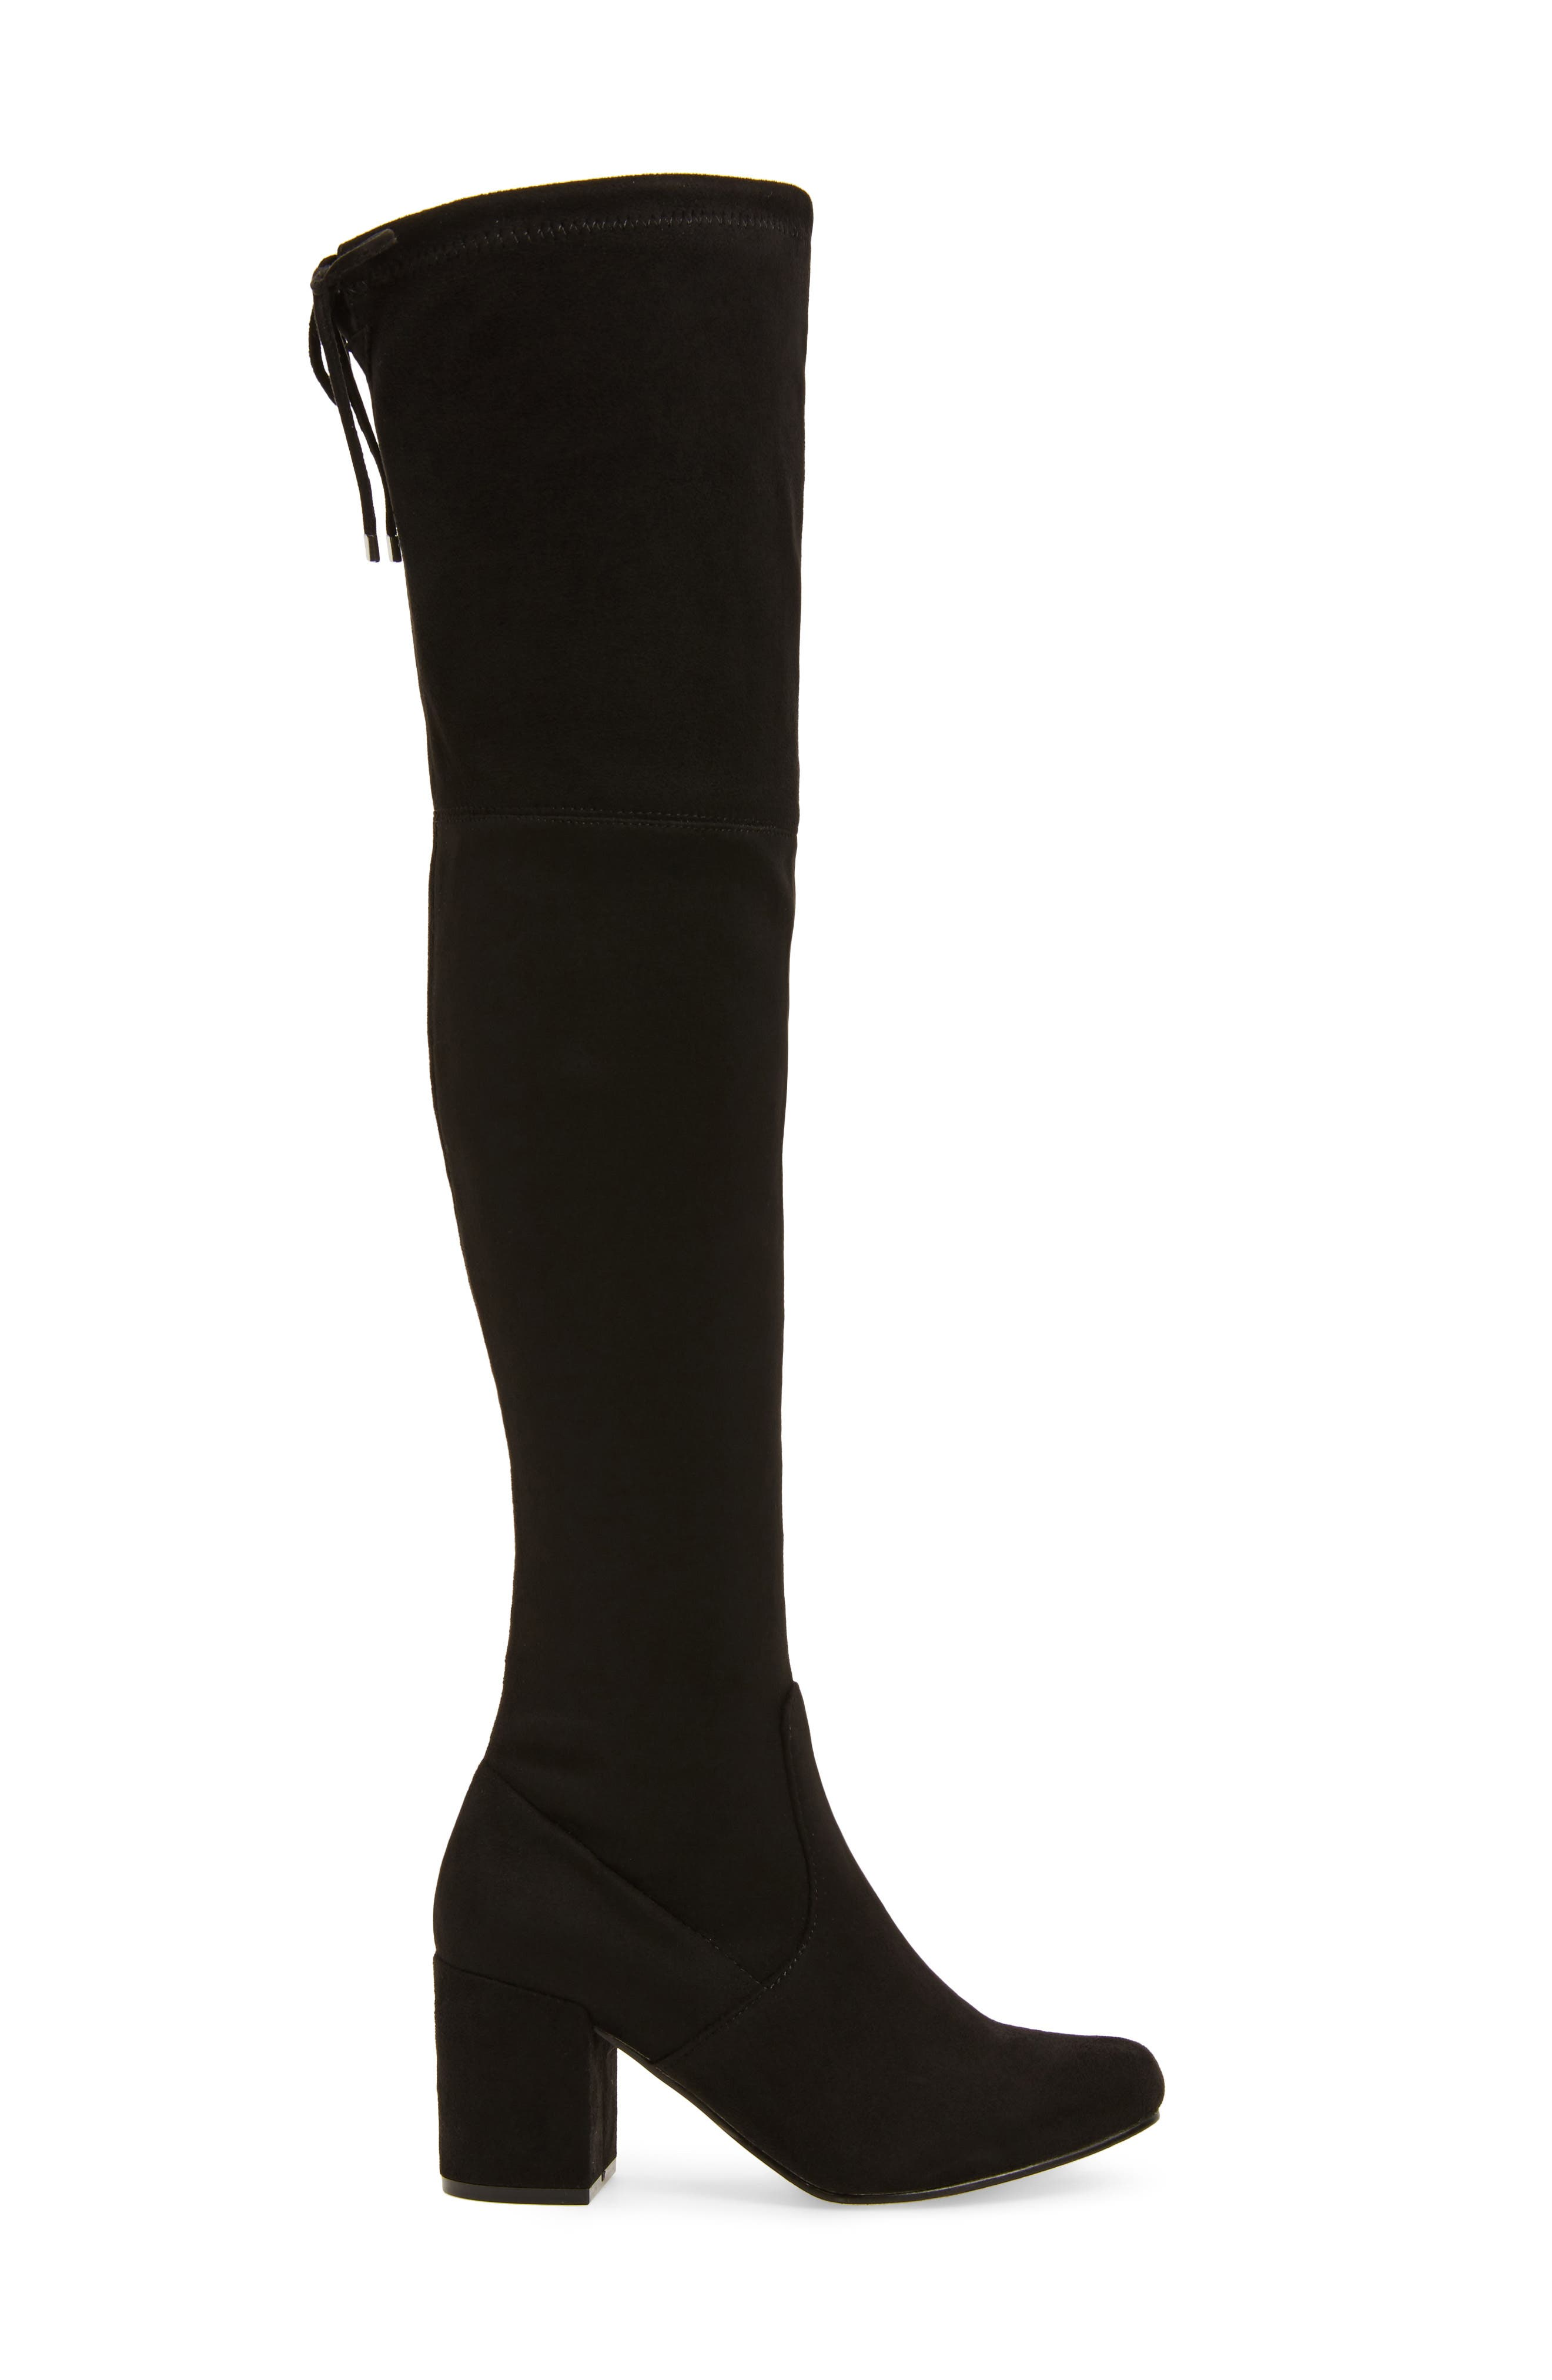 Heartbeat Over the Knee Boot,                             Alternate thumbnail 3, color,                             001